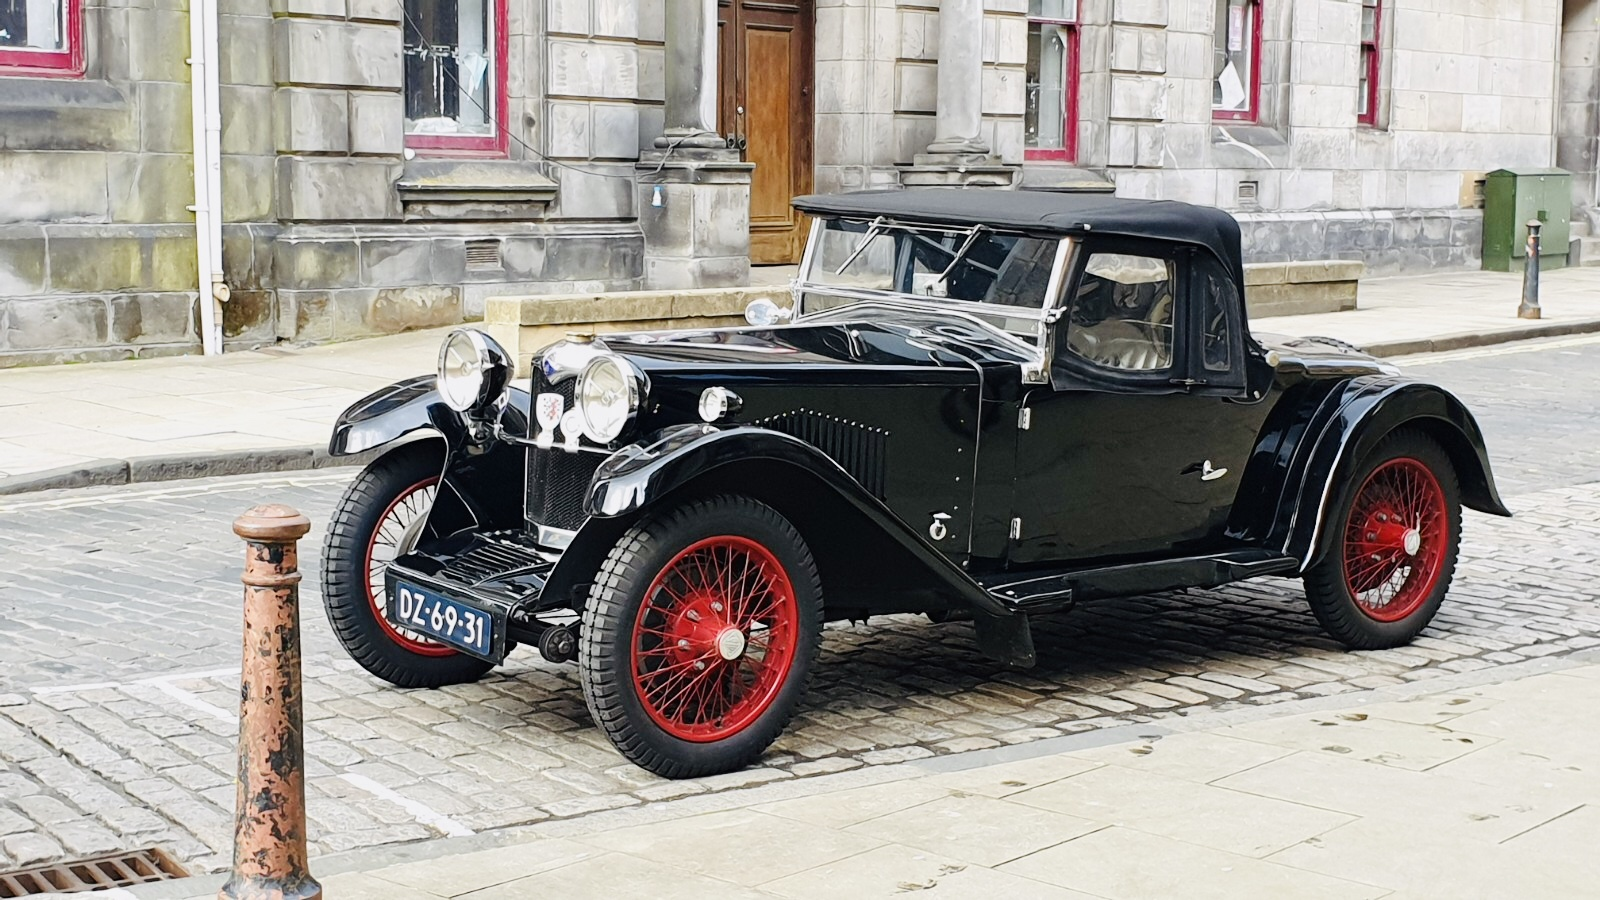 1932 Riley Gamecock, 1182 cc